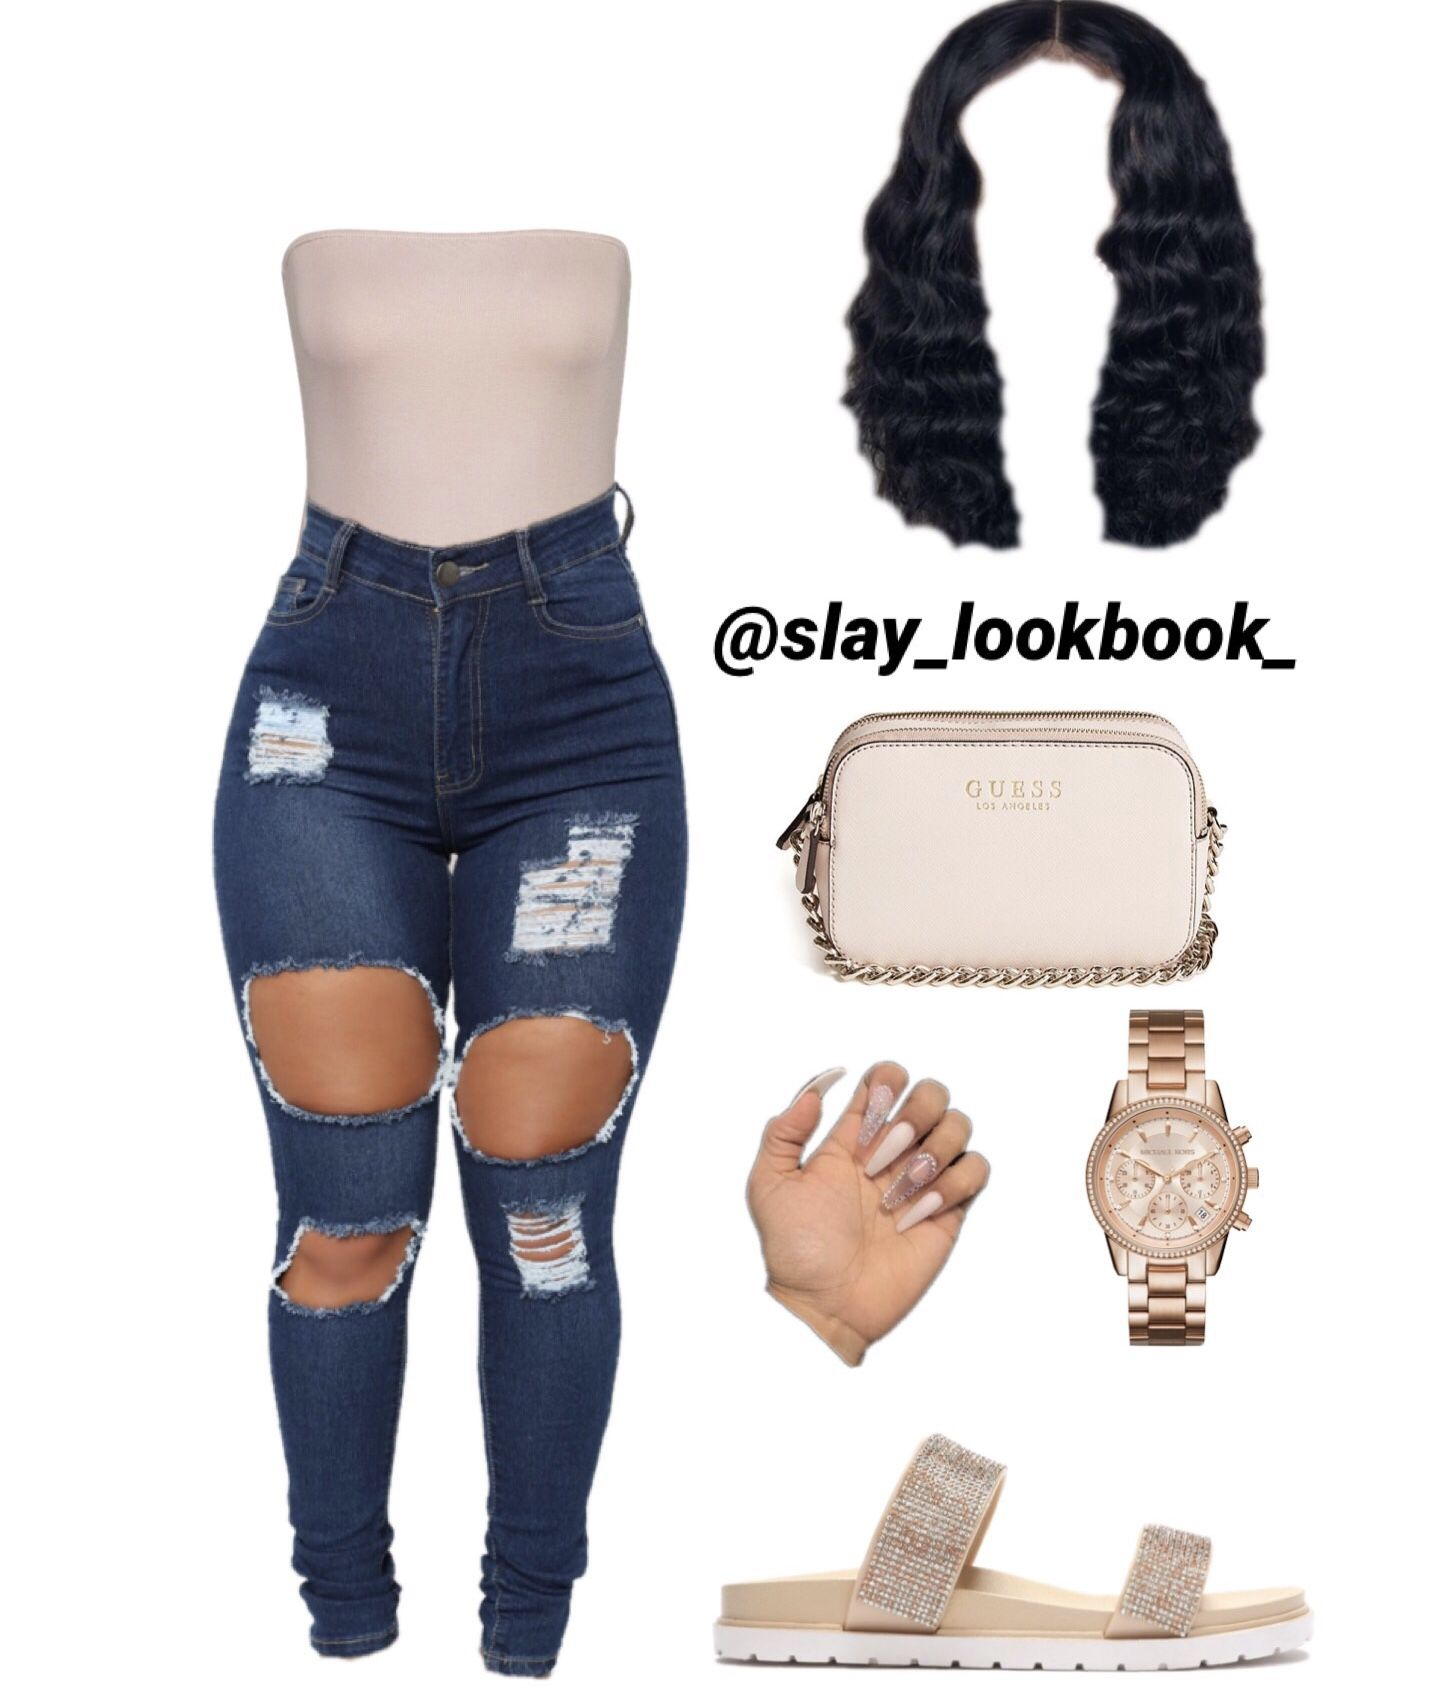 Follow me and my ig @slay_lookbook_ for more cute fits